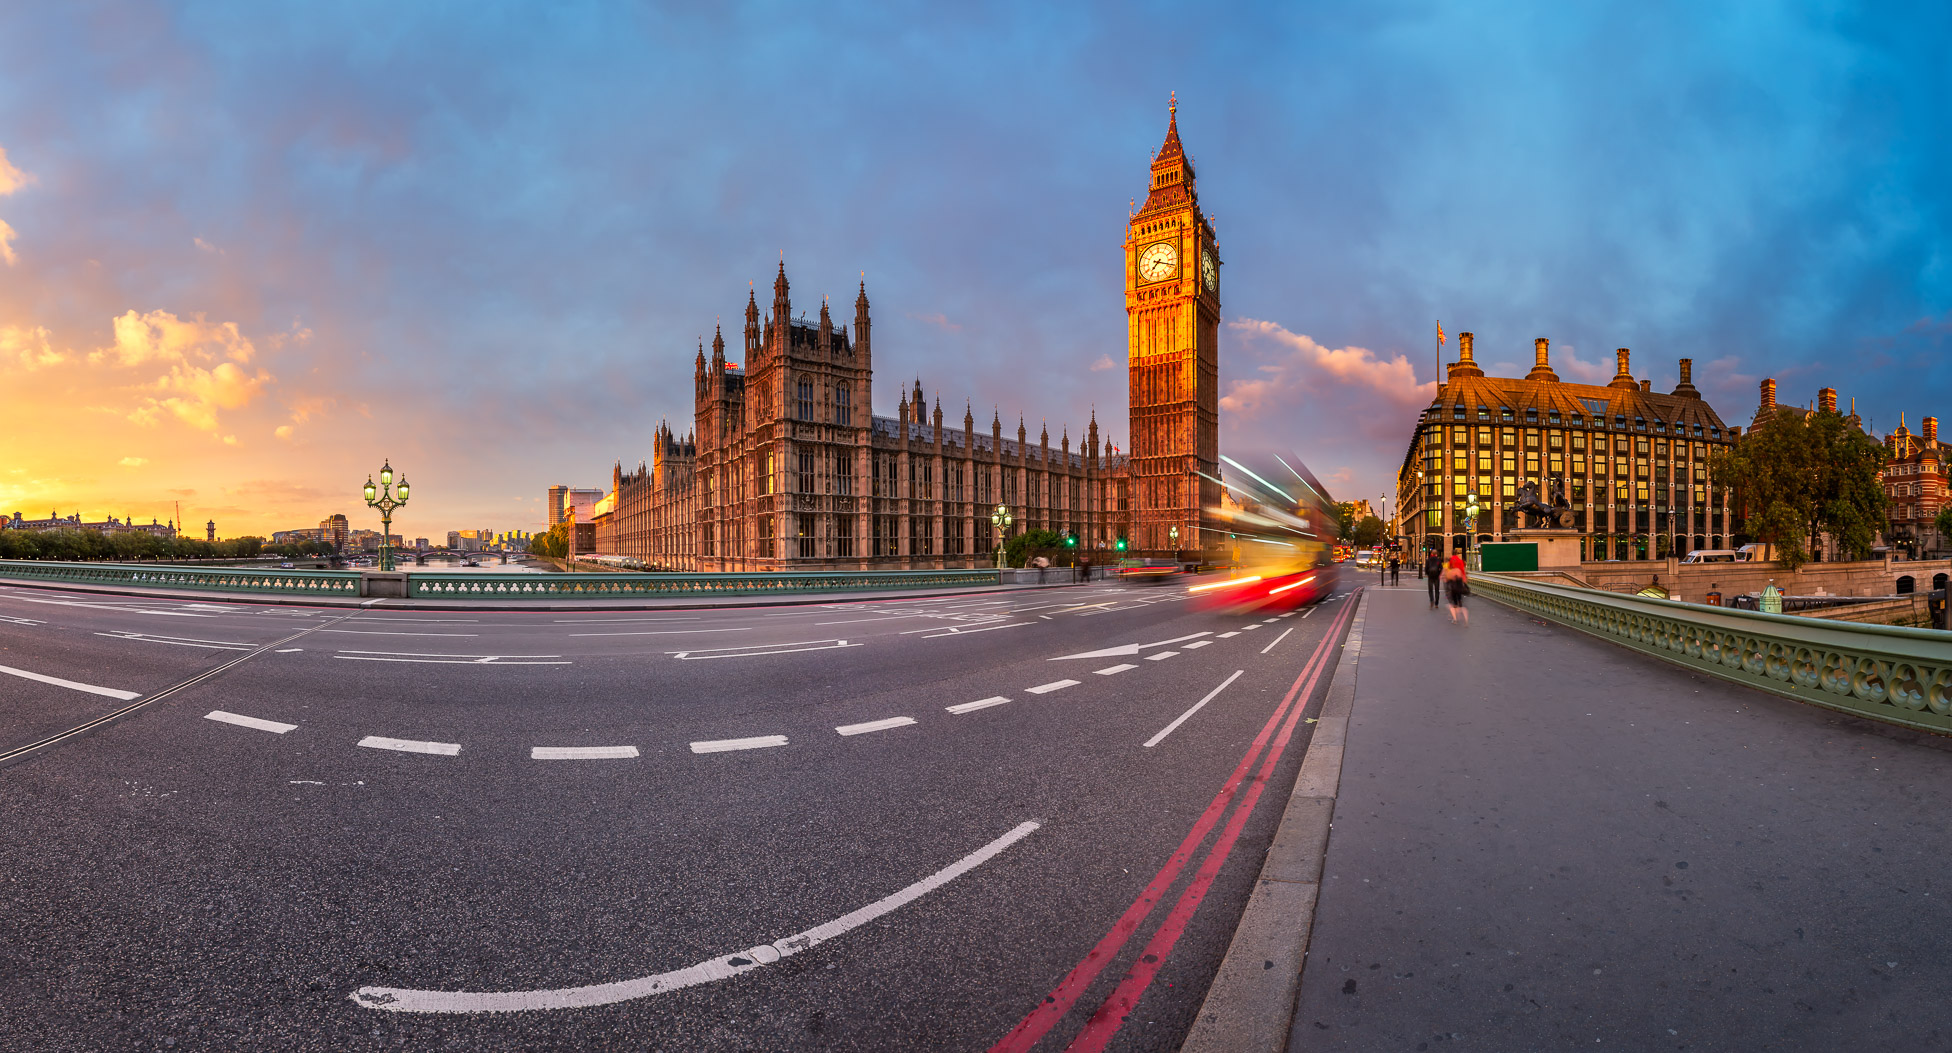 Panorama of Clock Tower and Westminster Bridge in the Morning, London, United Kingdom